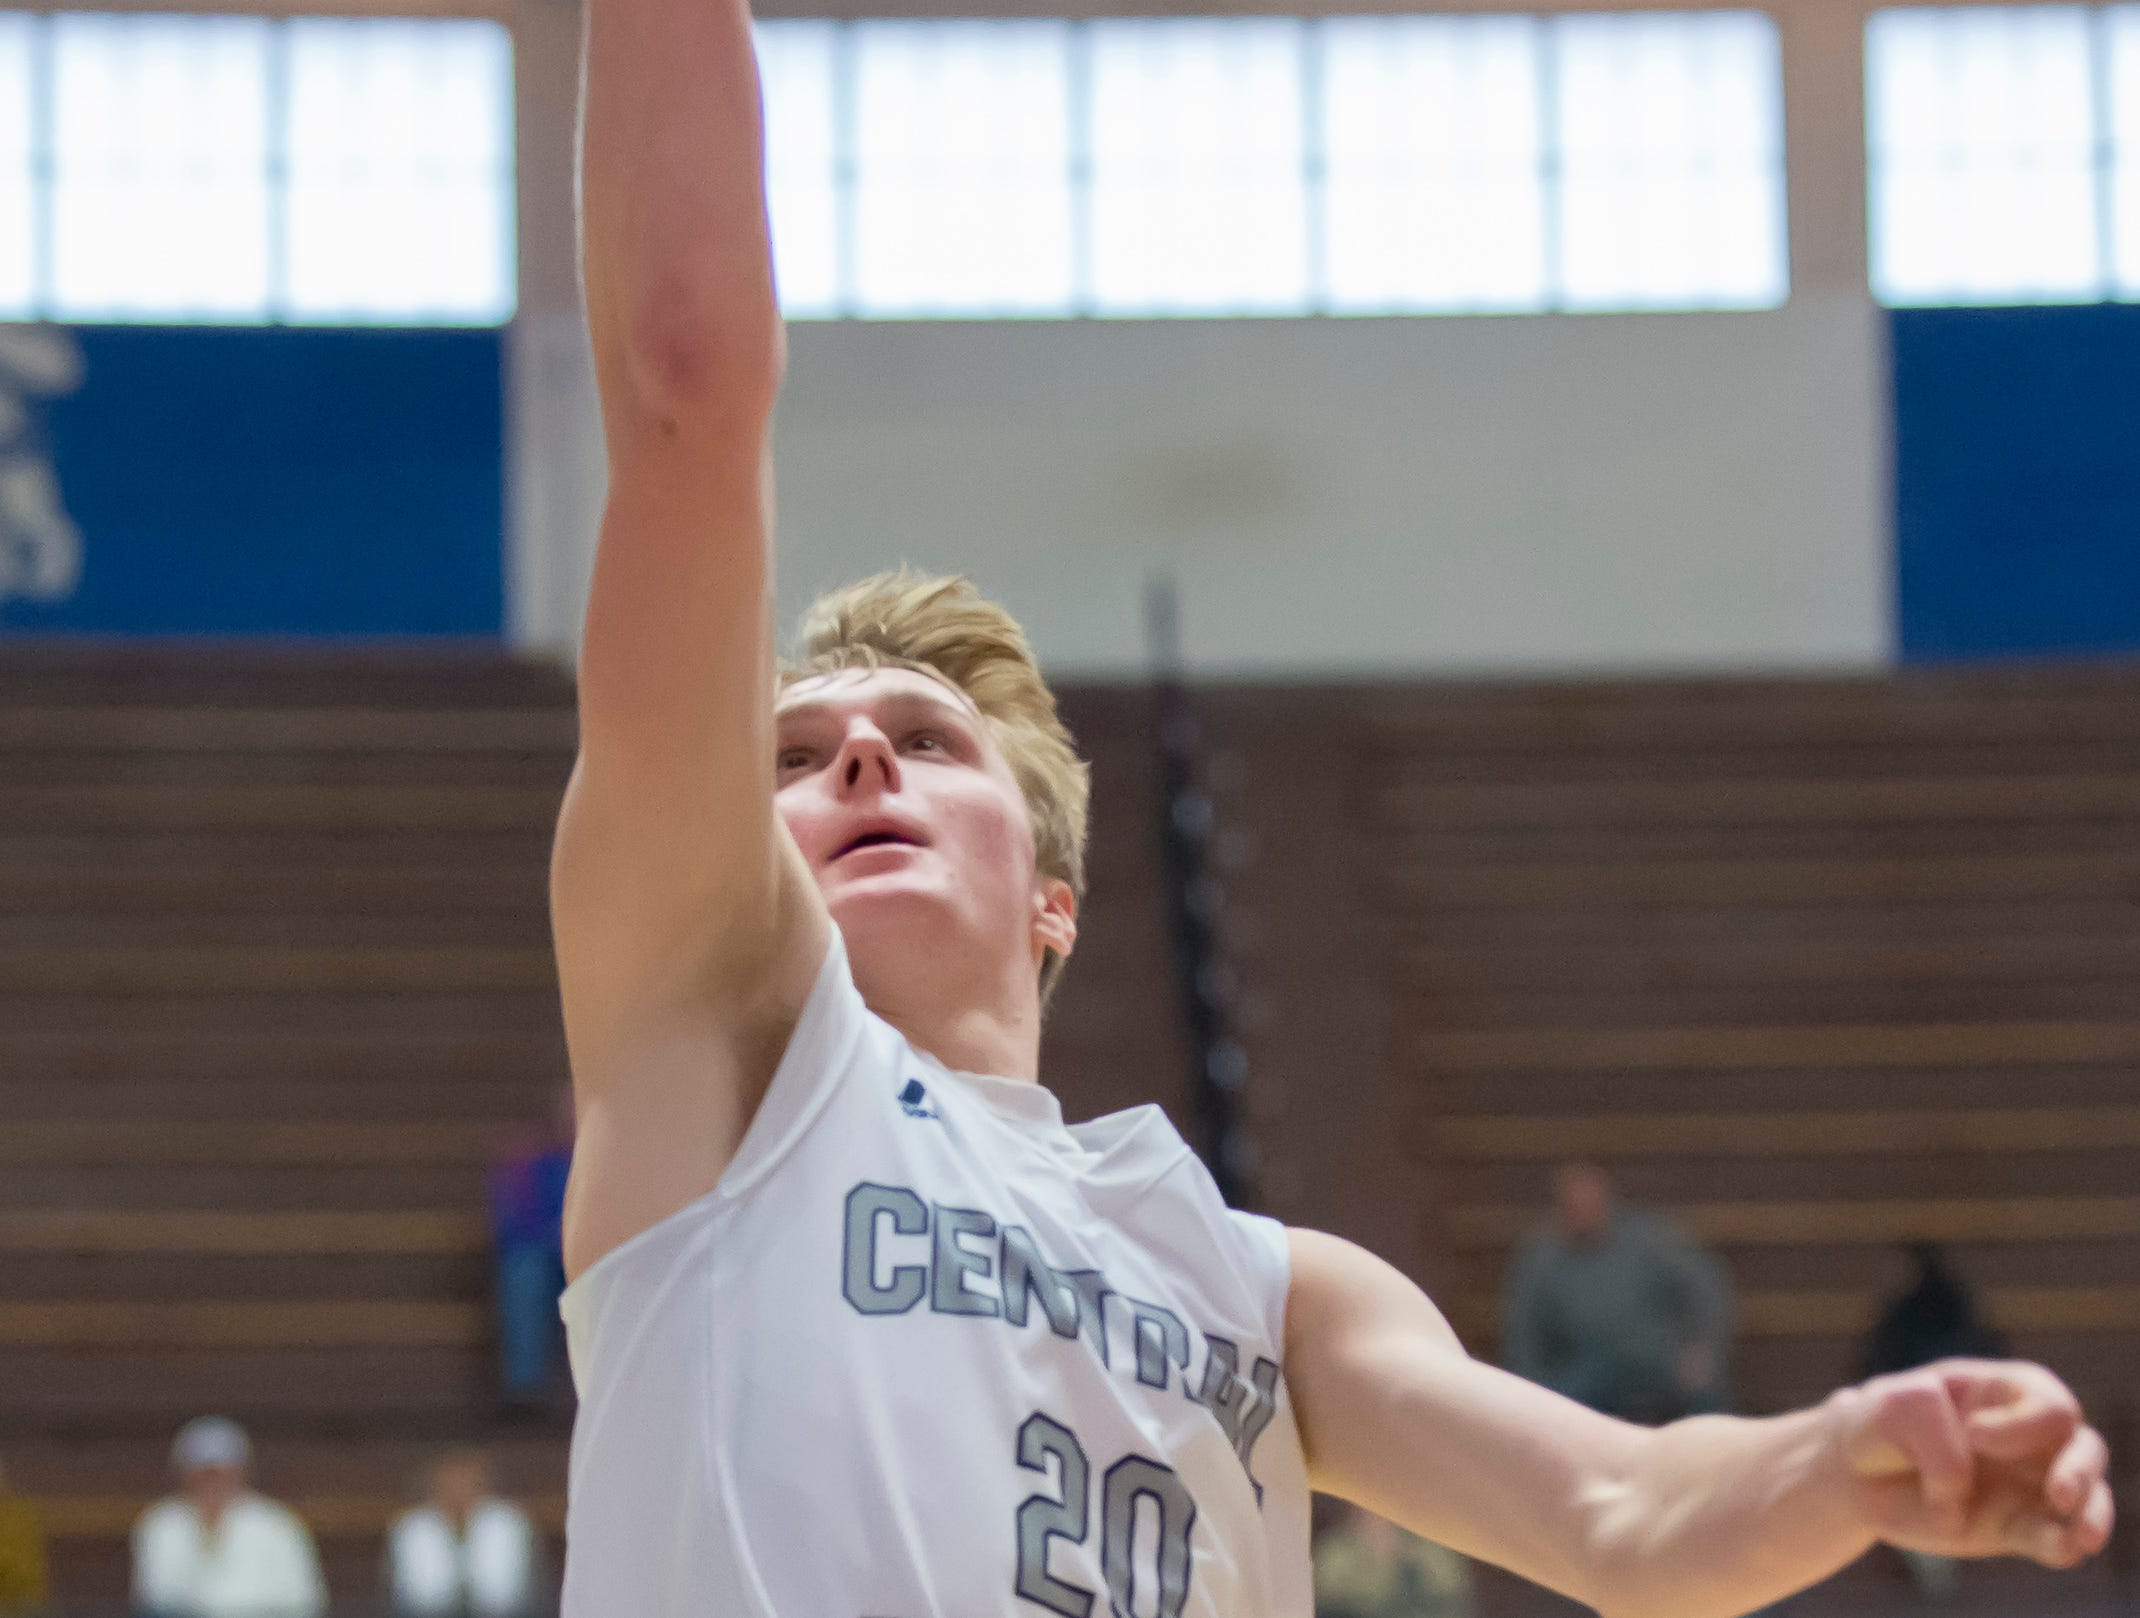 Action from the first round of the Regional between Central Catholic and Randolph Southern from Case Arena on 3/9/19 - David Schwartz